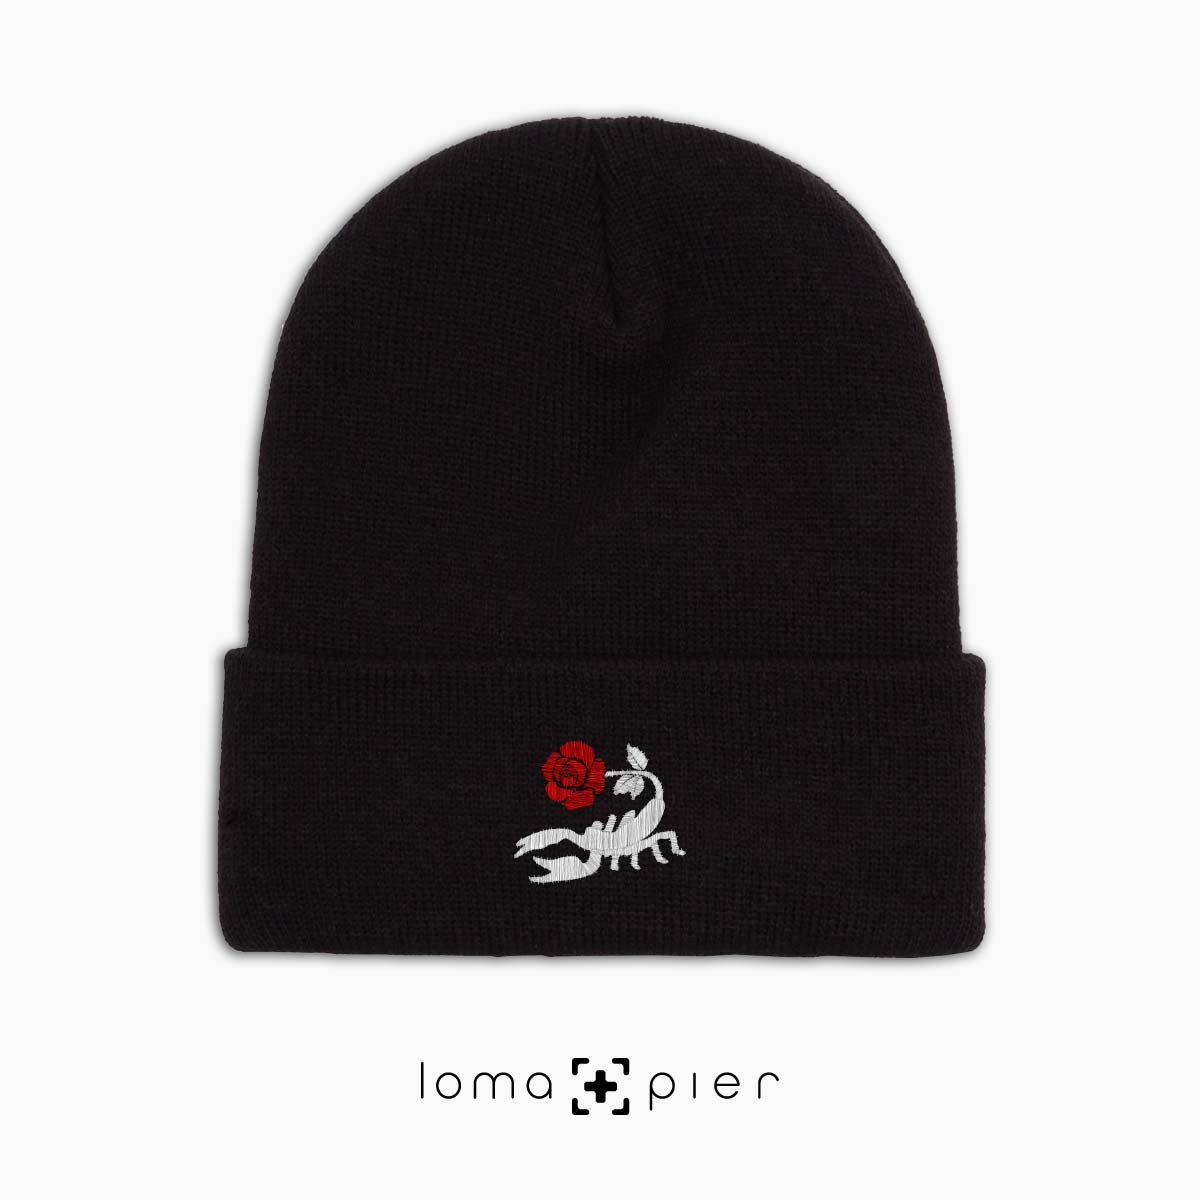 SCORPION ROSE icon embroidered on a black cuffed beanie with multicolor thread by loma+pier hat store made in the USA